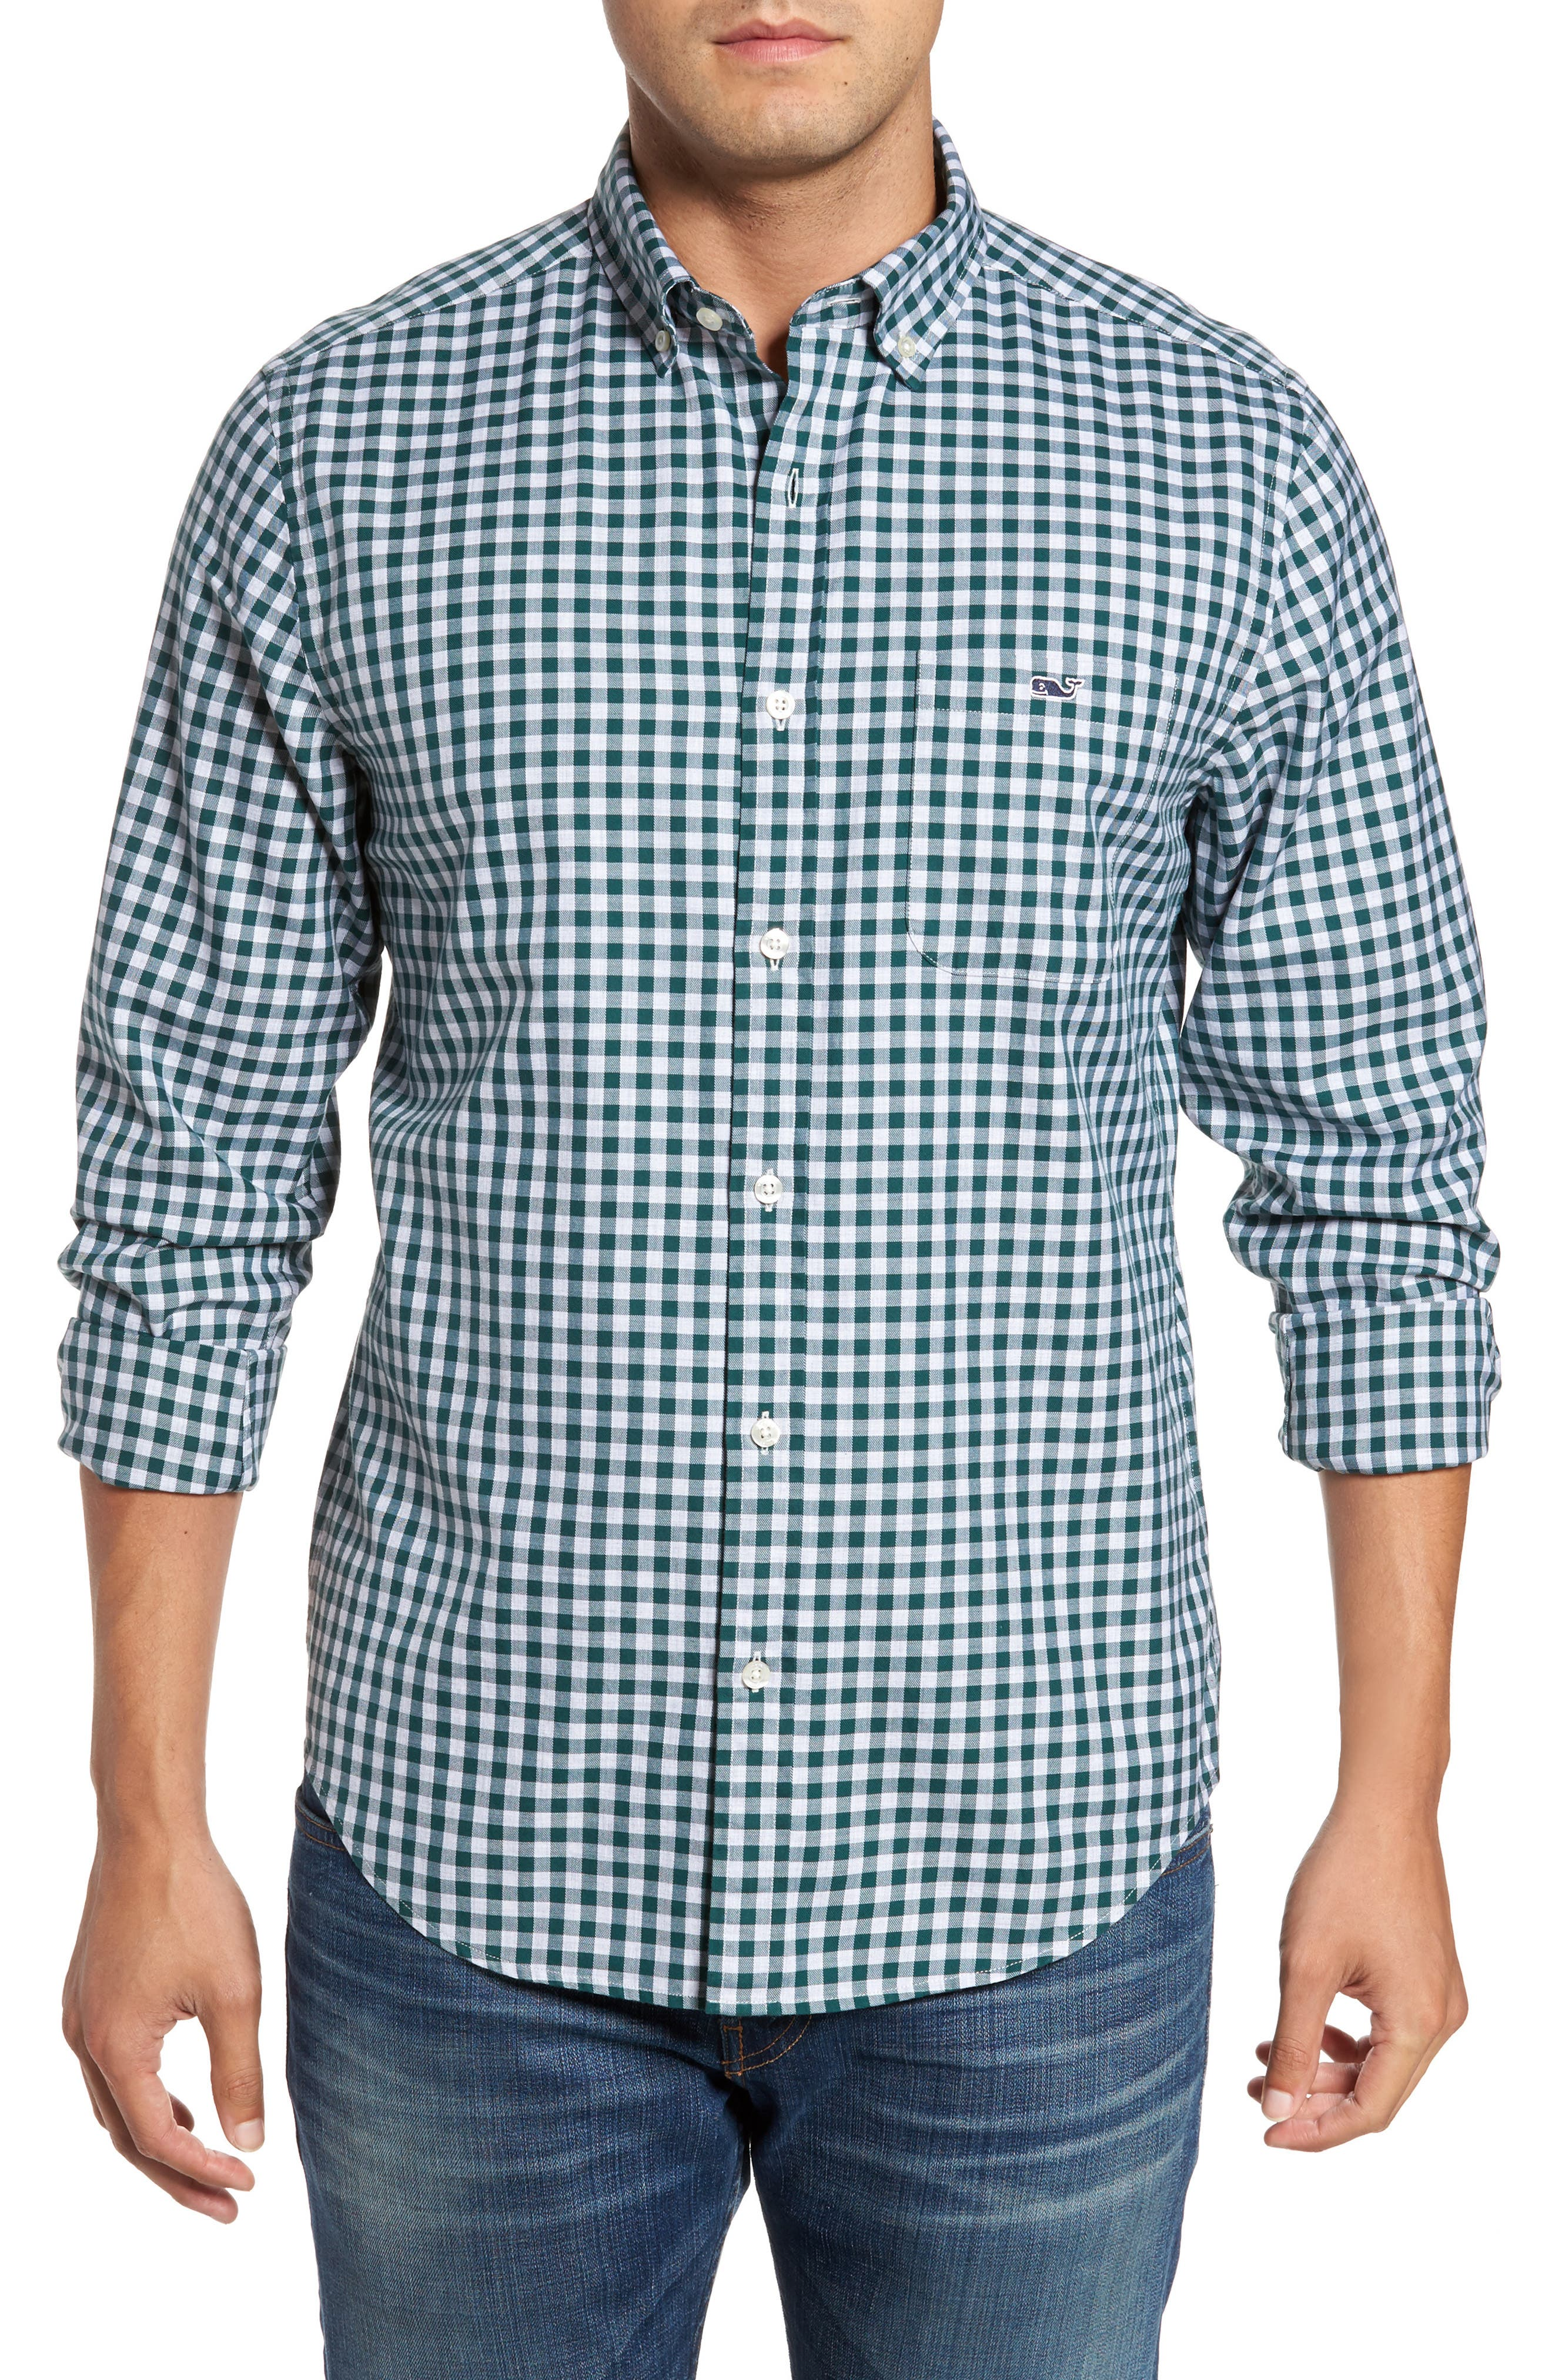 Main Image - vineyard vines Classic Fit Tucker Cliff Gingham Sport Shirt